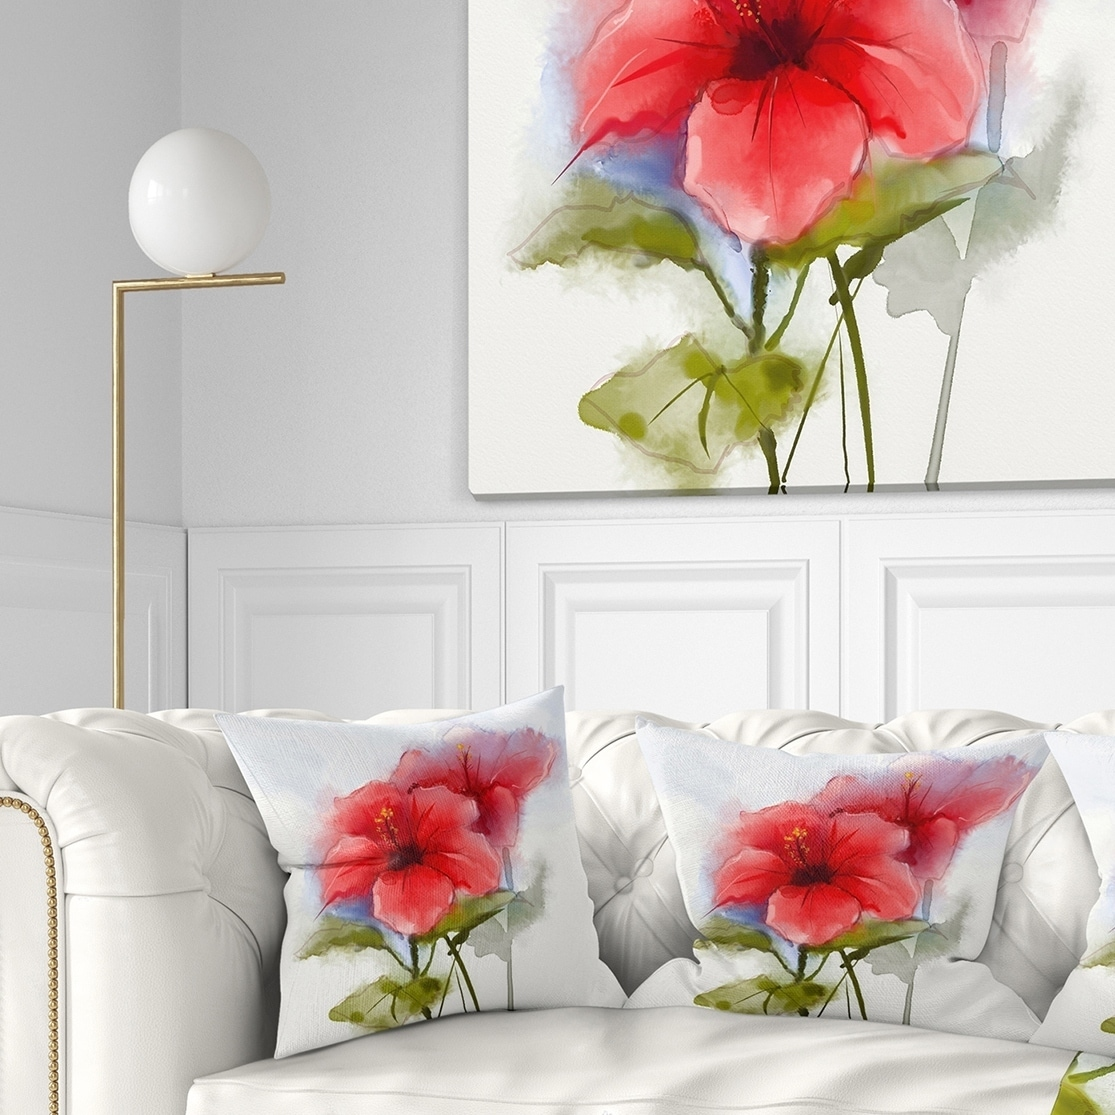 X 20 In Sofa Throw Pillow 12 In Designart Cu13156 12 20 Blooming Red Flower Watercolor Floral Lumbar Cushion Cover For Living Room Throw Pillow Covers Bedding